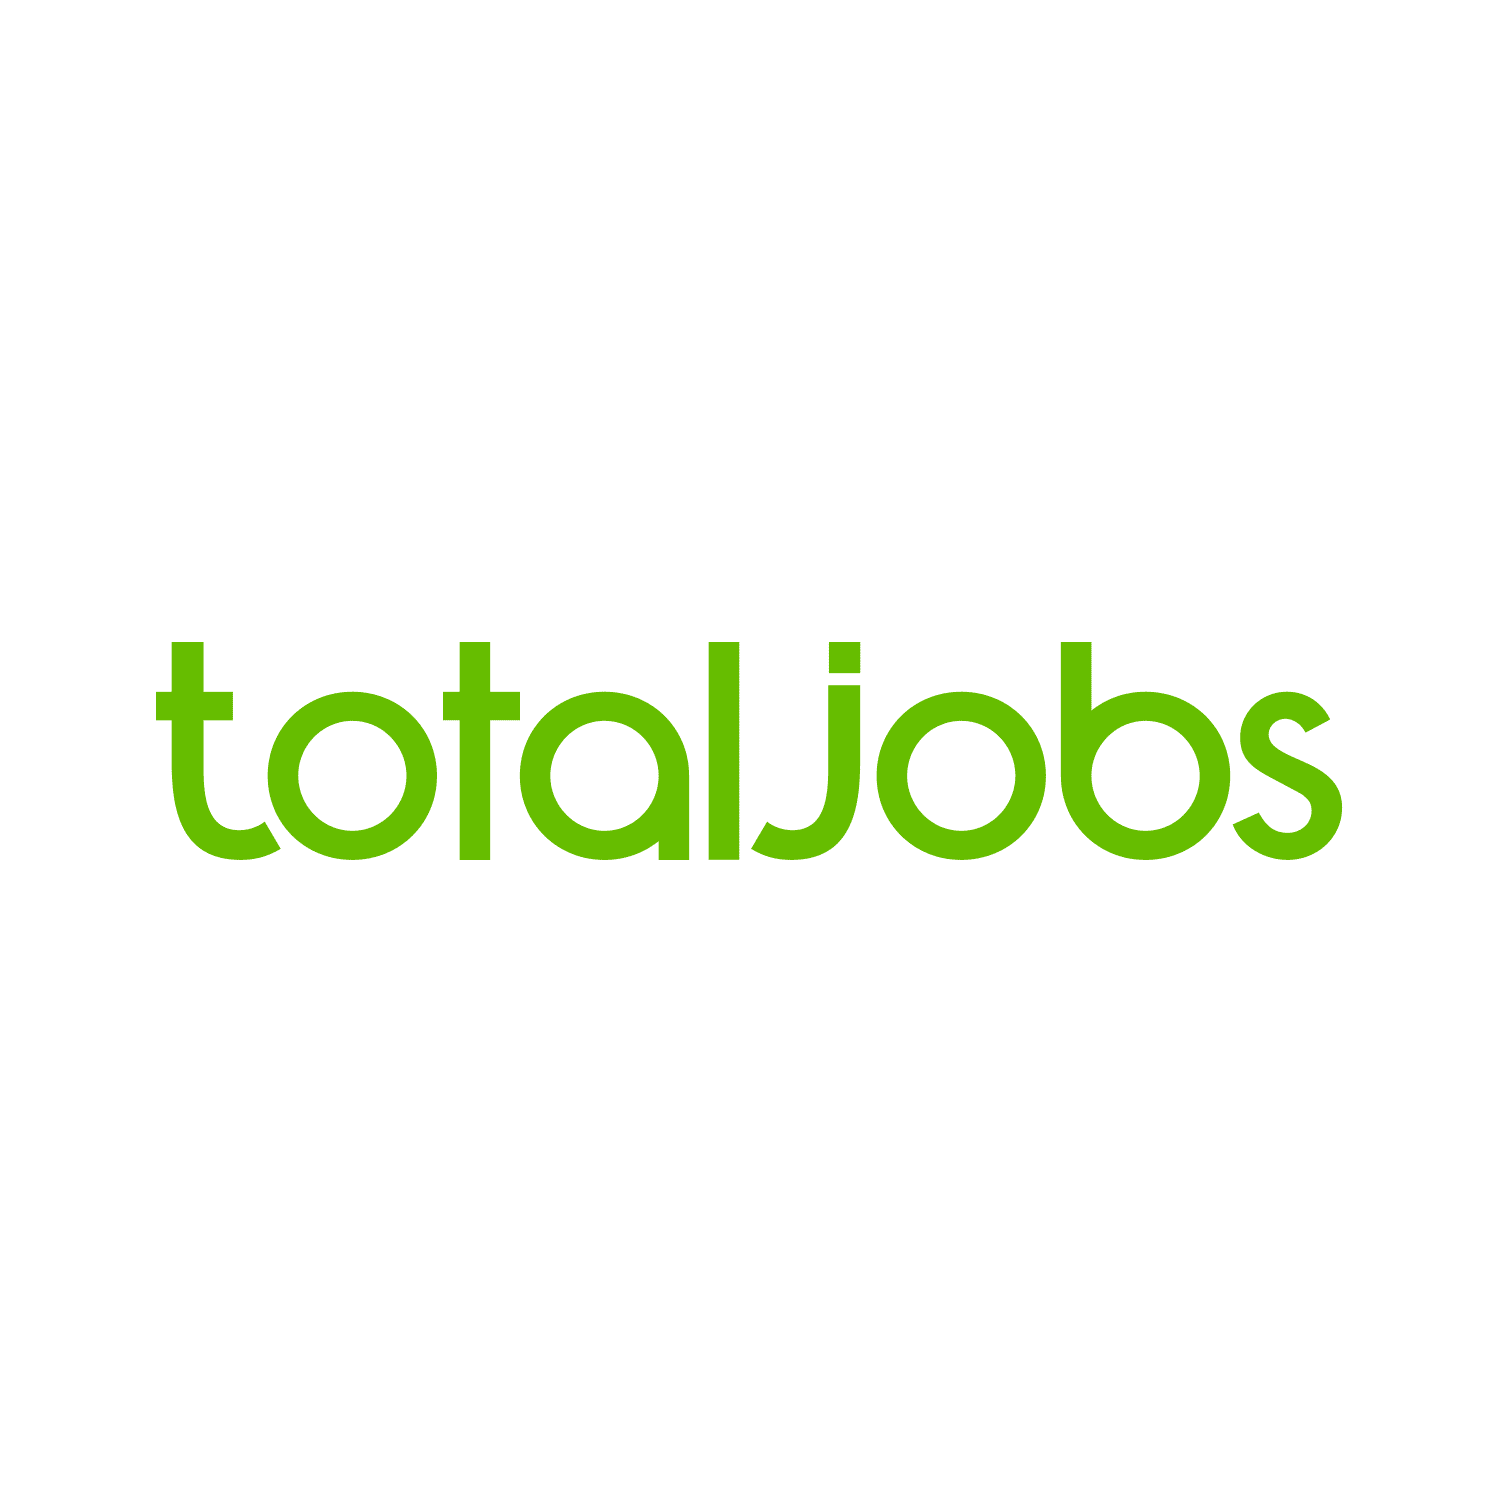 Totaljobs job board, Totaljobs for recruiters, Totaljobs job posting, How to post a job on Totaljobs, Totaljobs job board, Totaljobs ATS, Totaljobs for employers, Totaljobs recruiter, how to hire, what is Total jobs, post job free